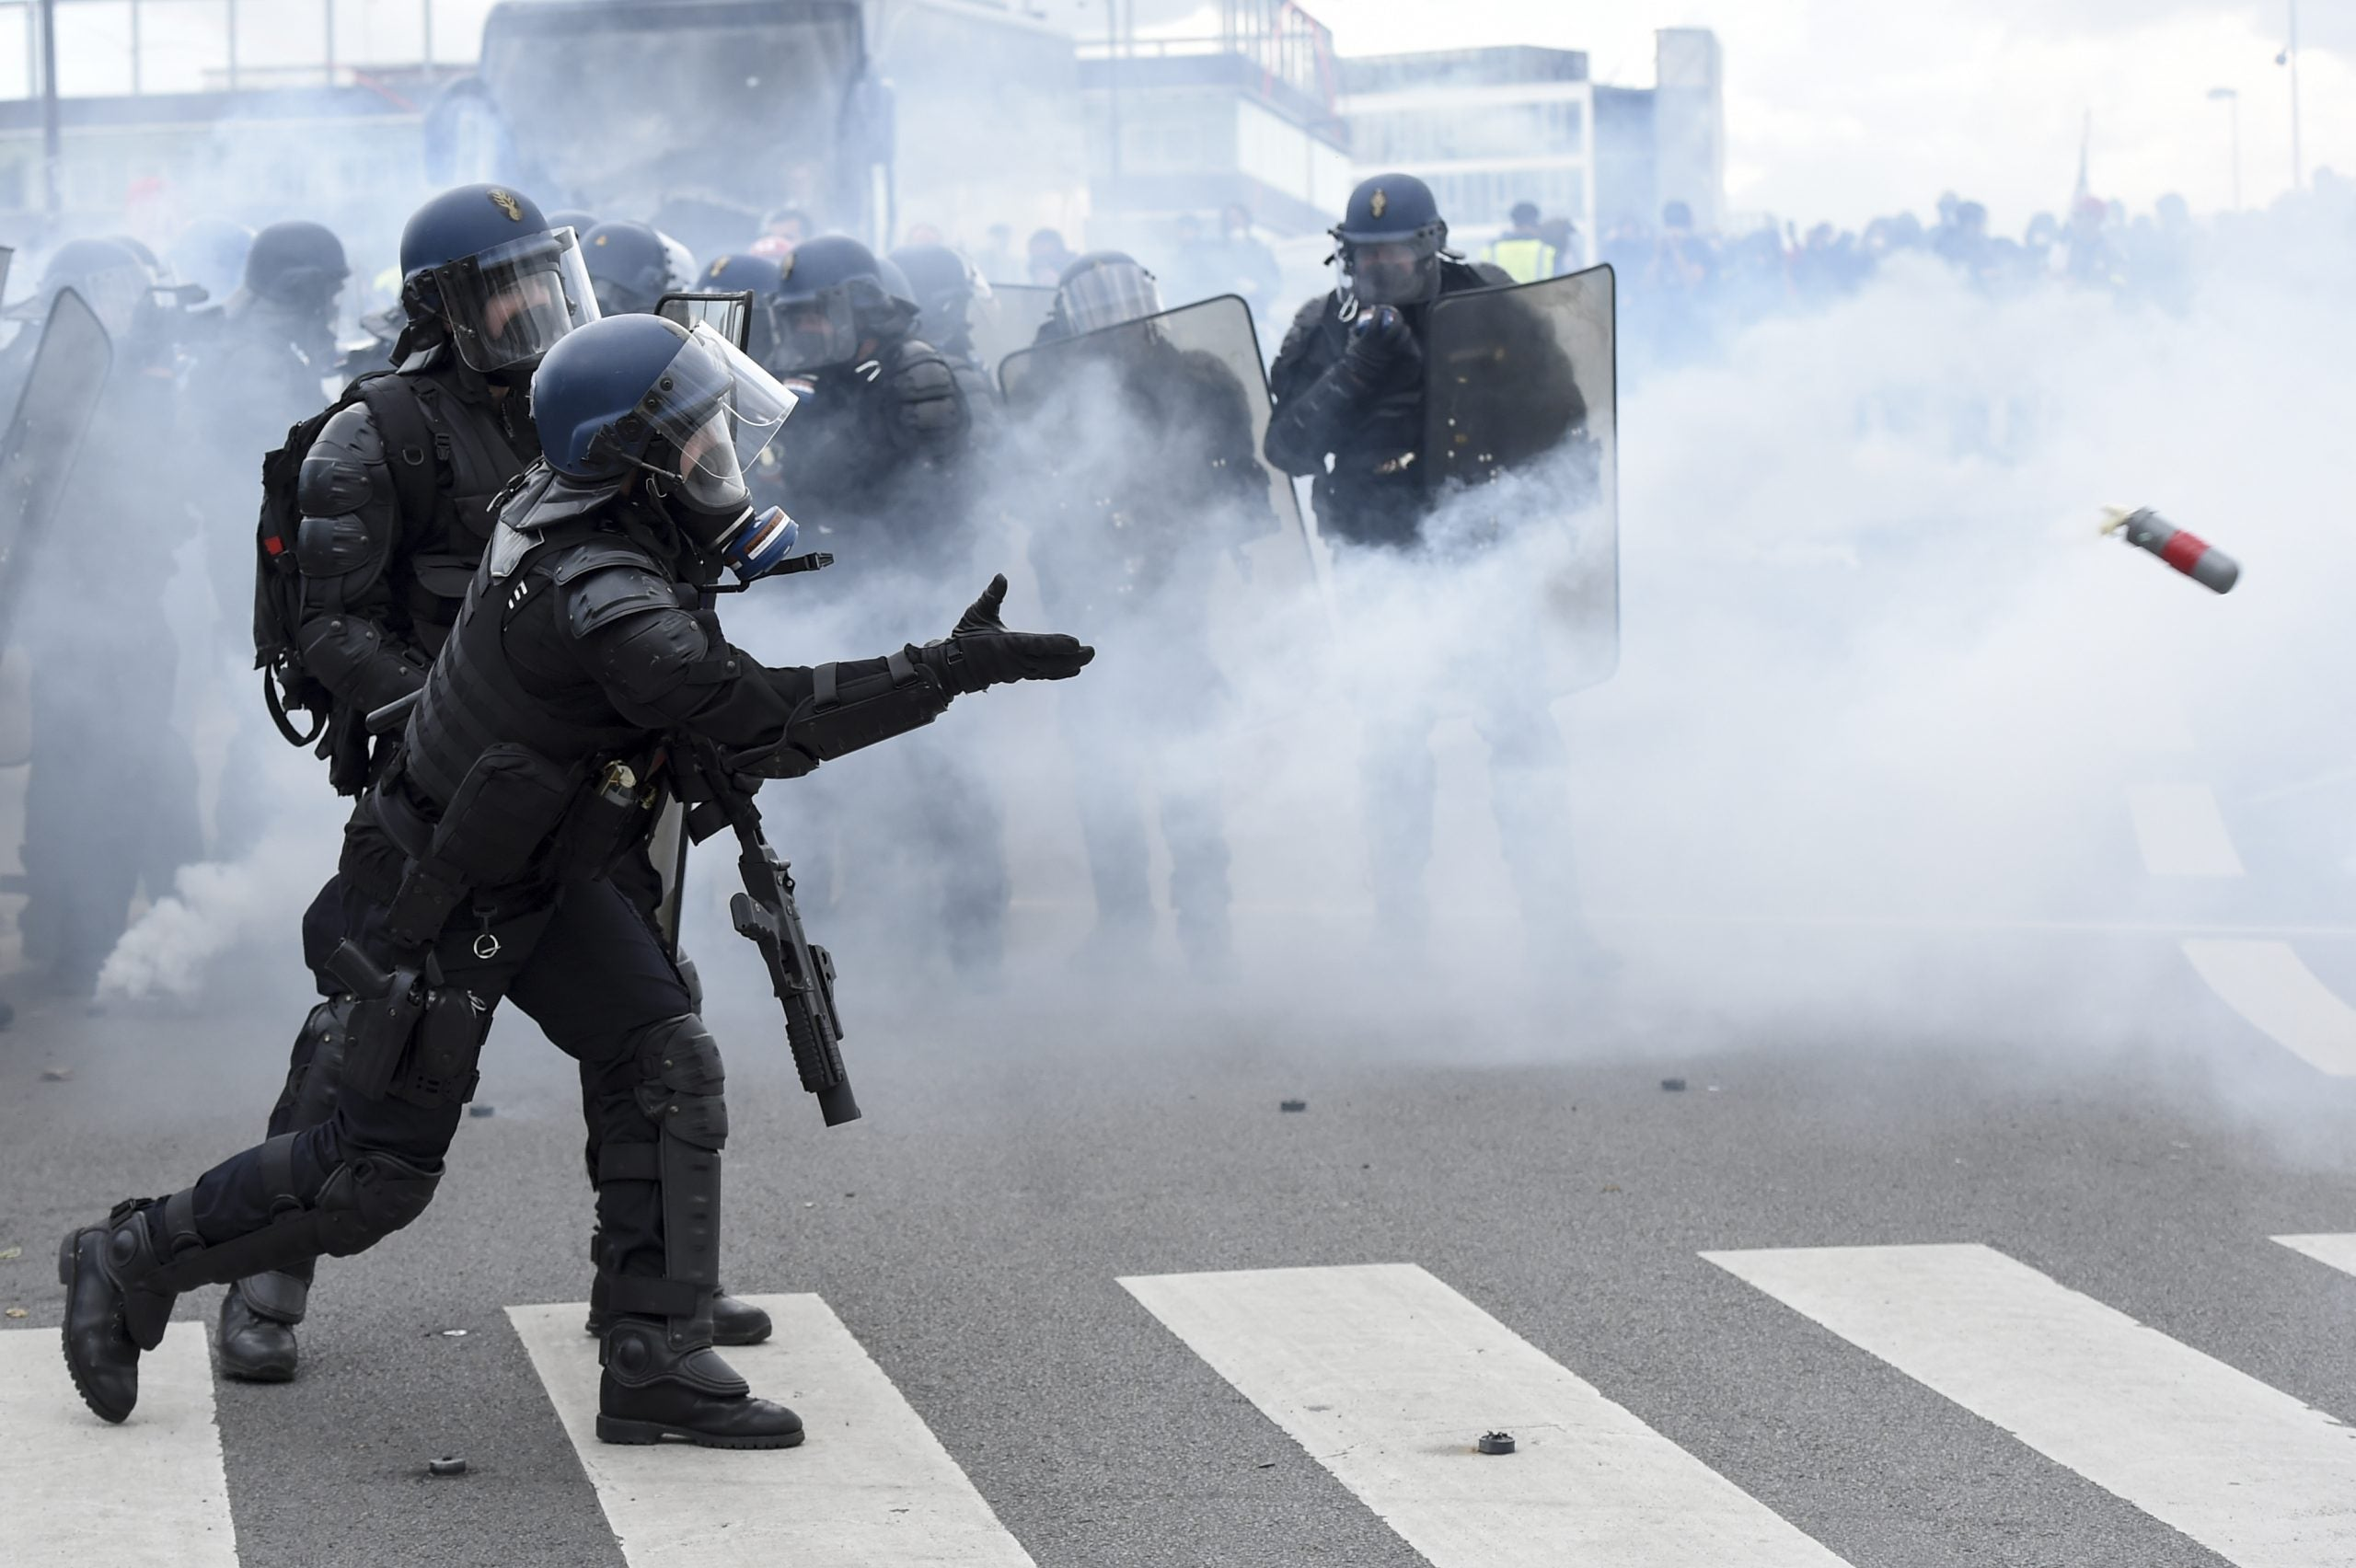 How French police brutality is harming the country's international image